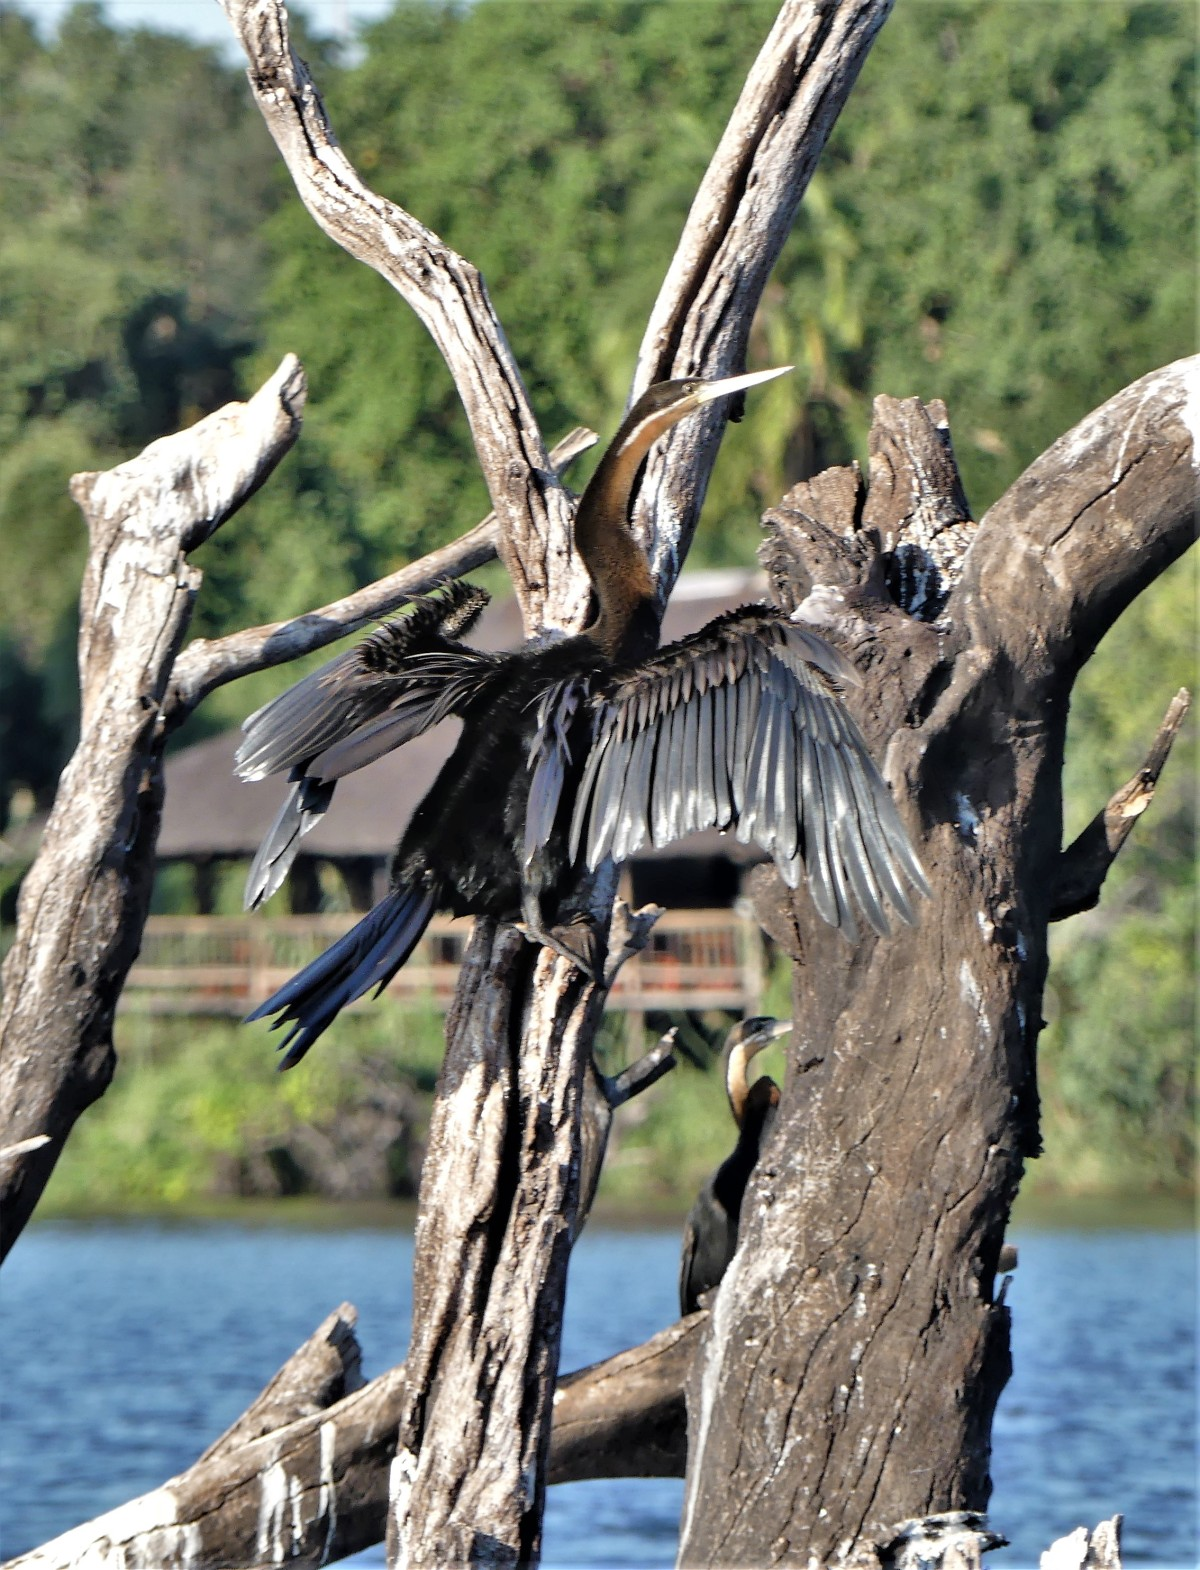 African darter on a branch